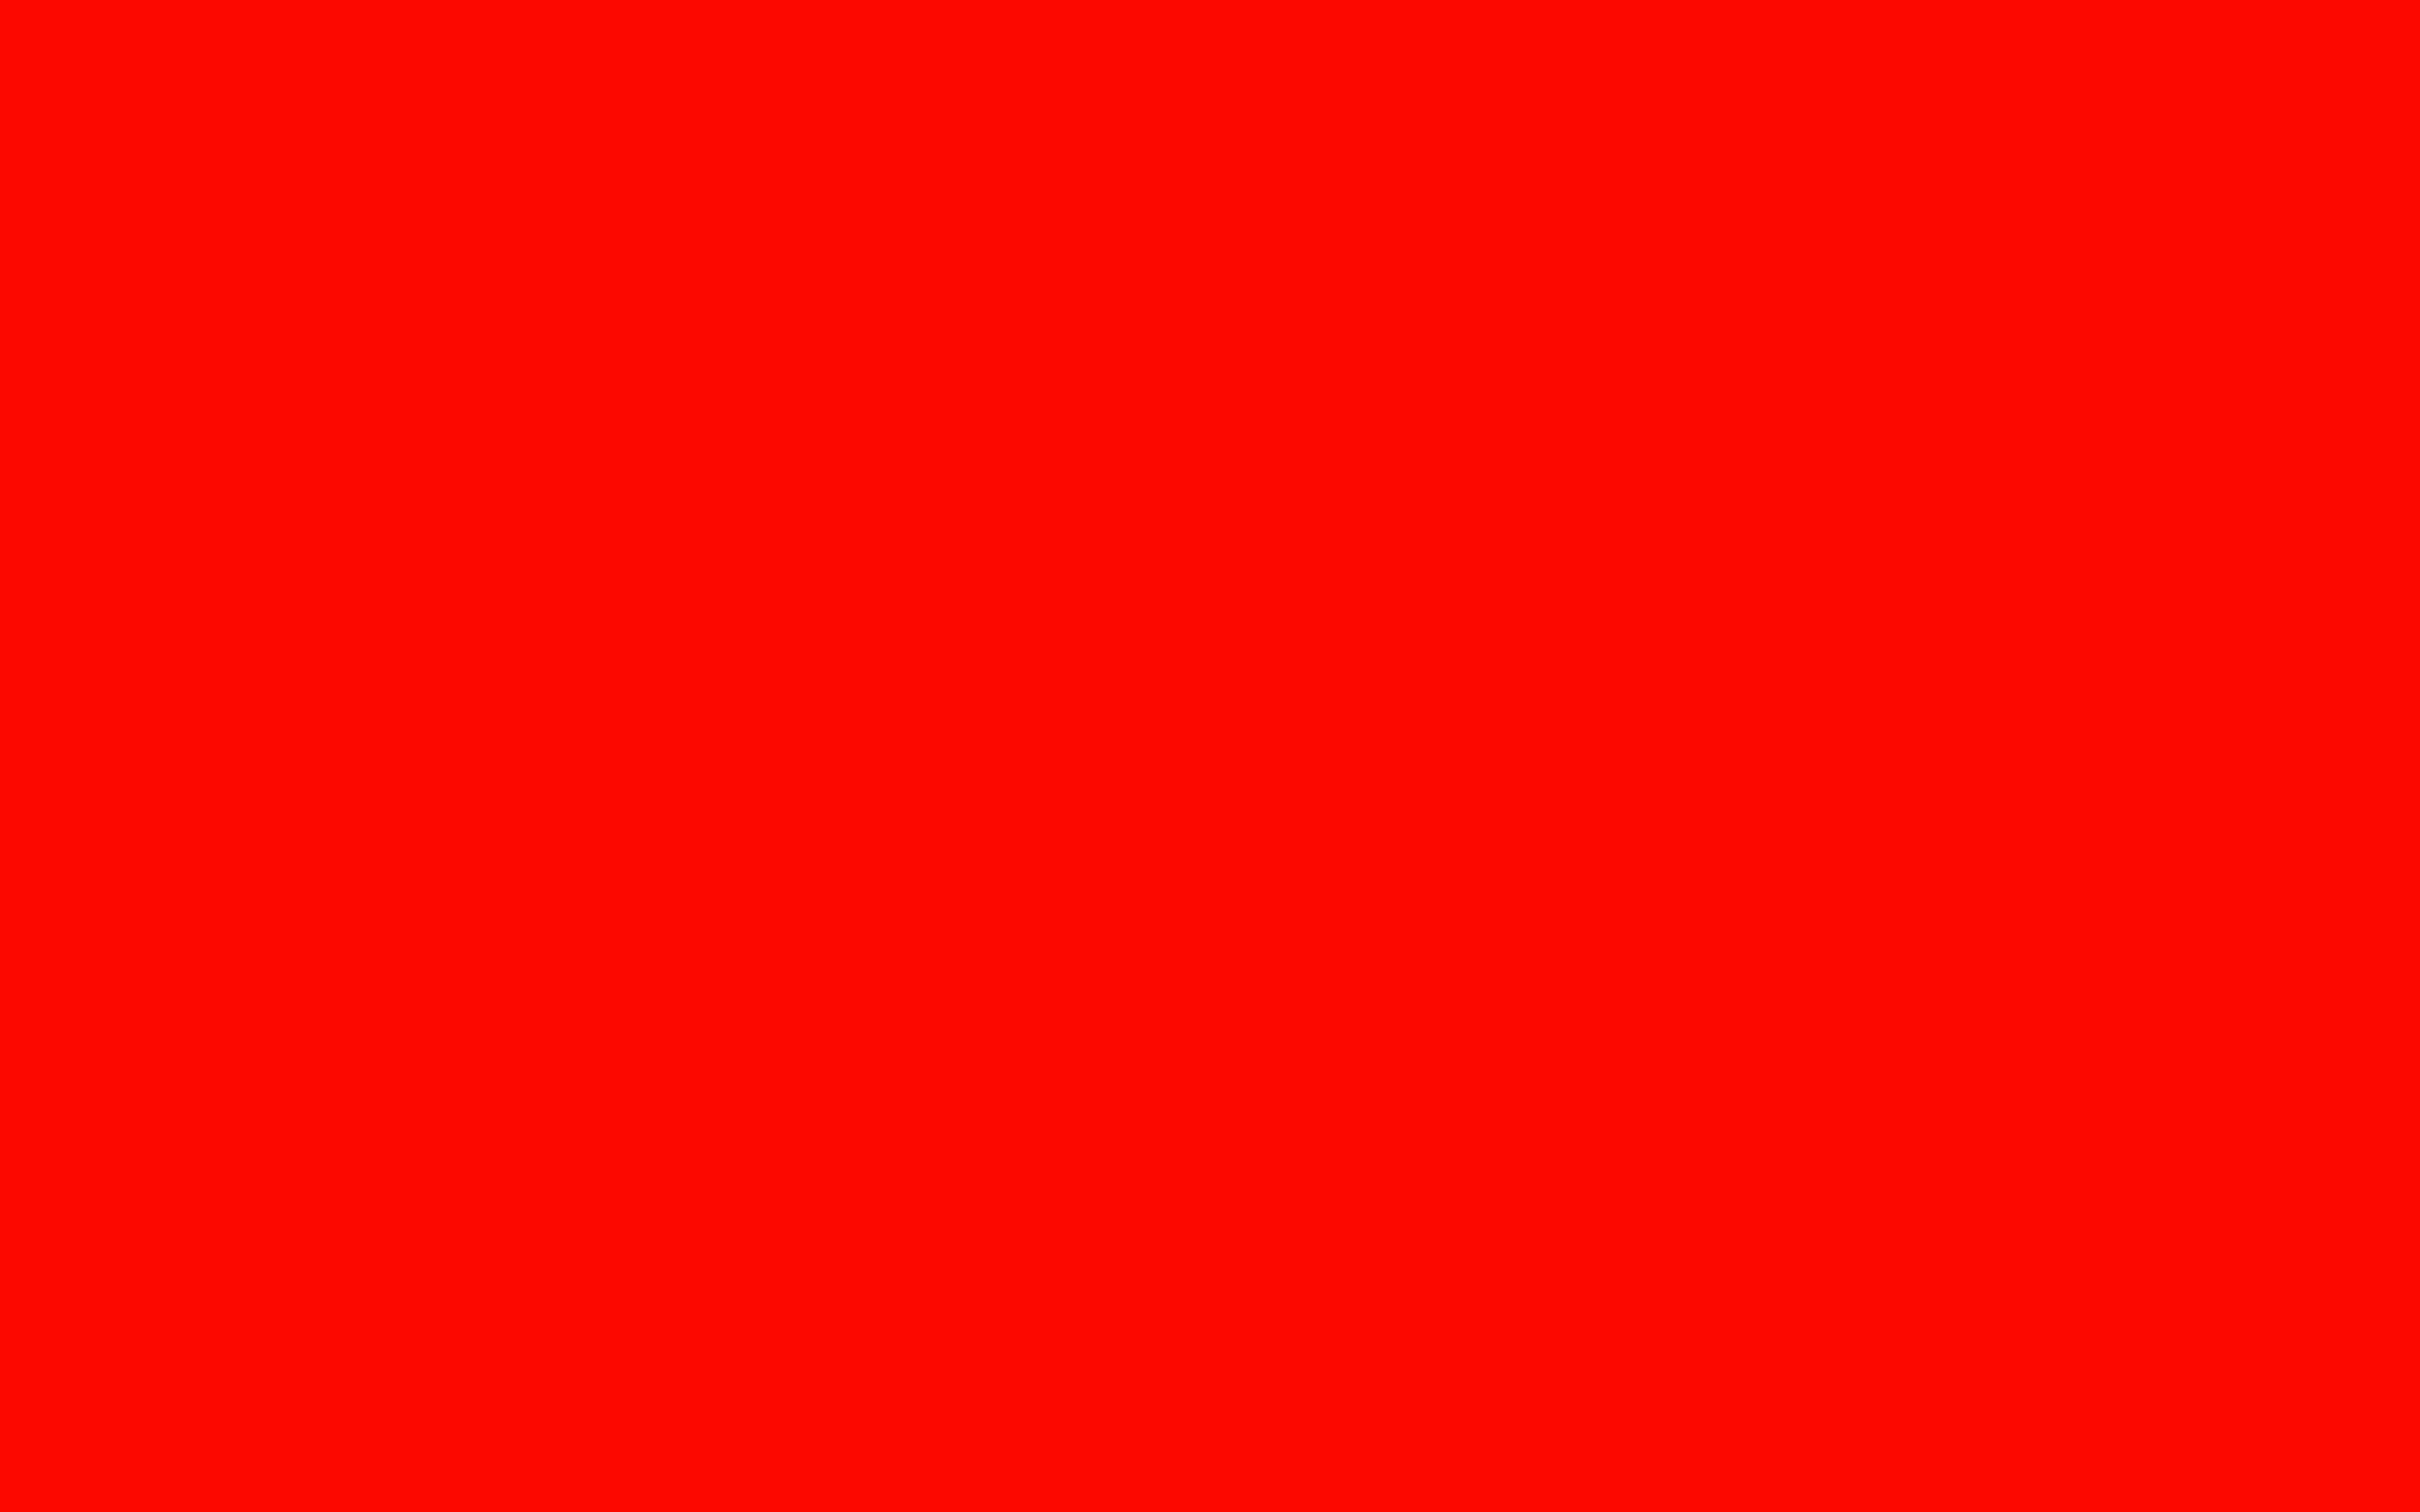 2560x1600 Candy Apple Red Solid Color Background